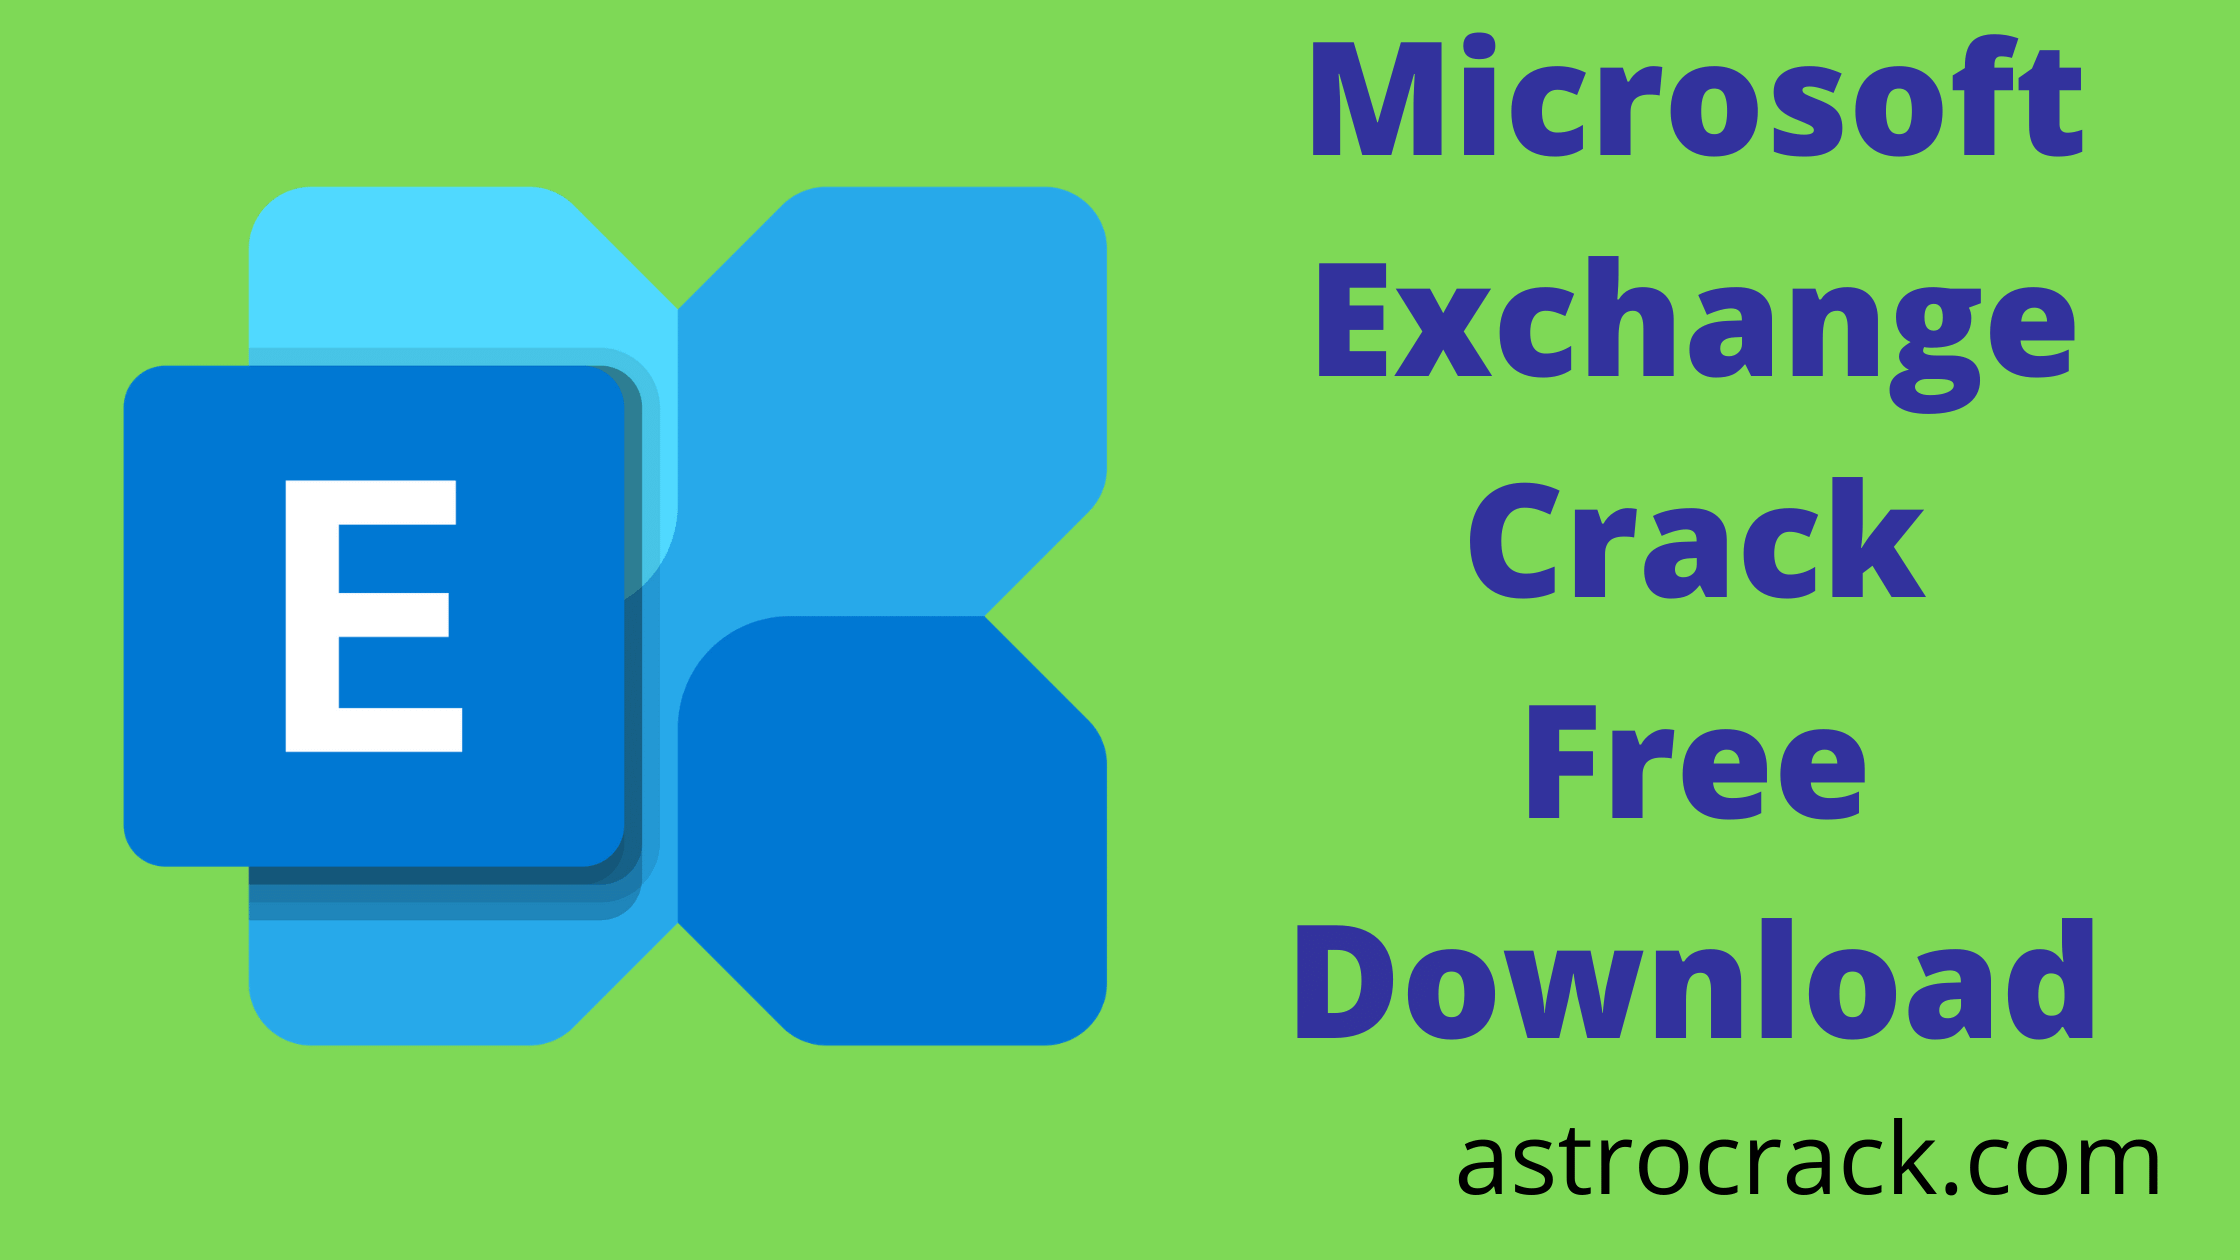 Microsoft Exchange Crack